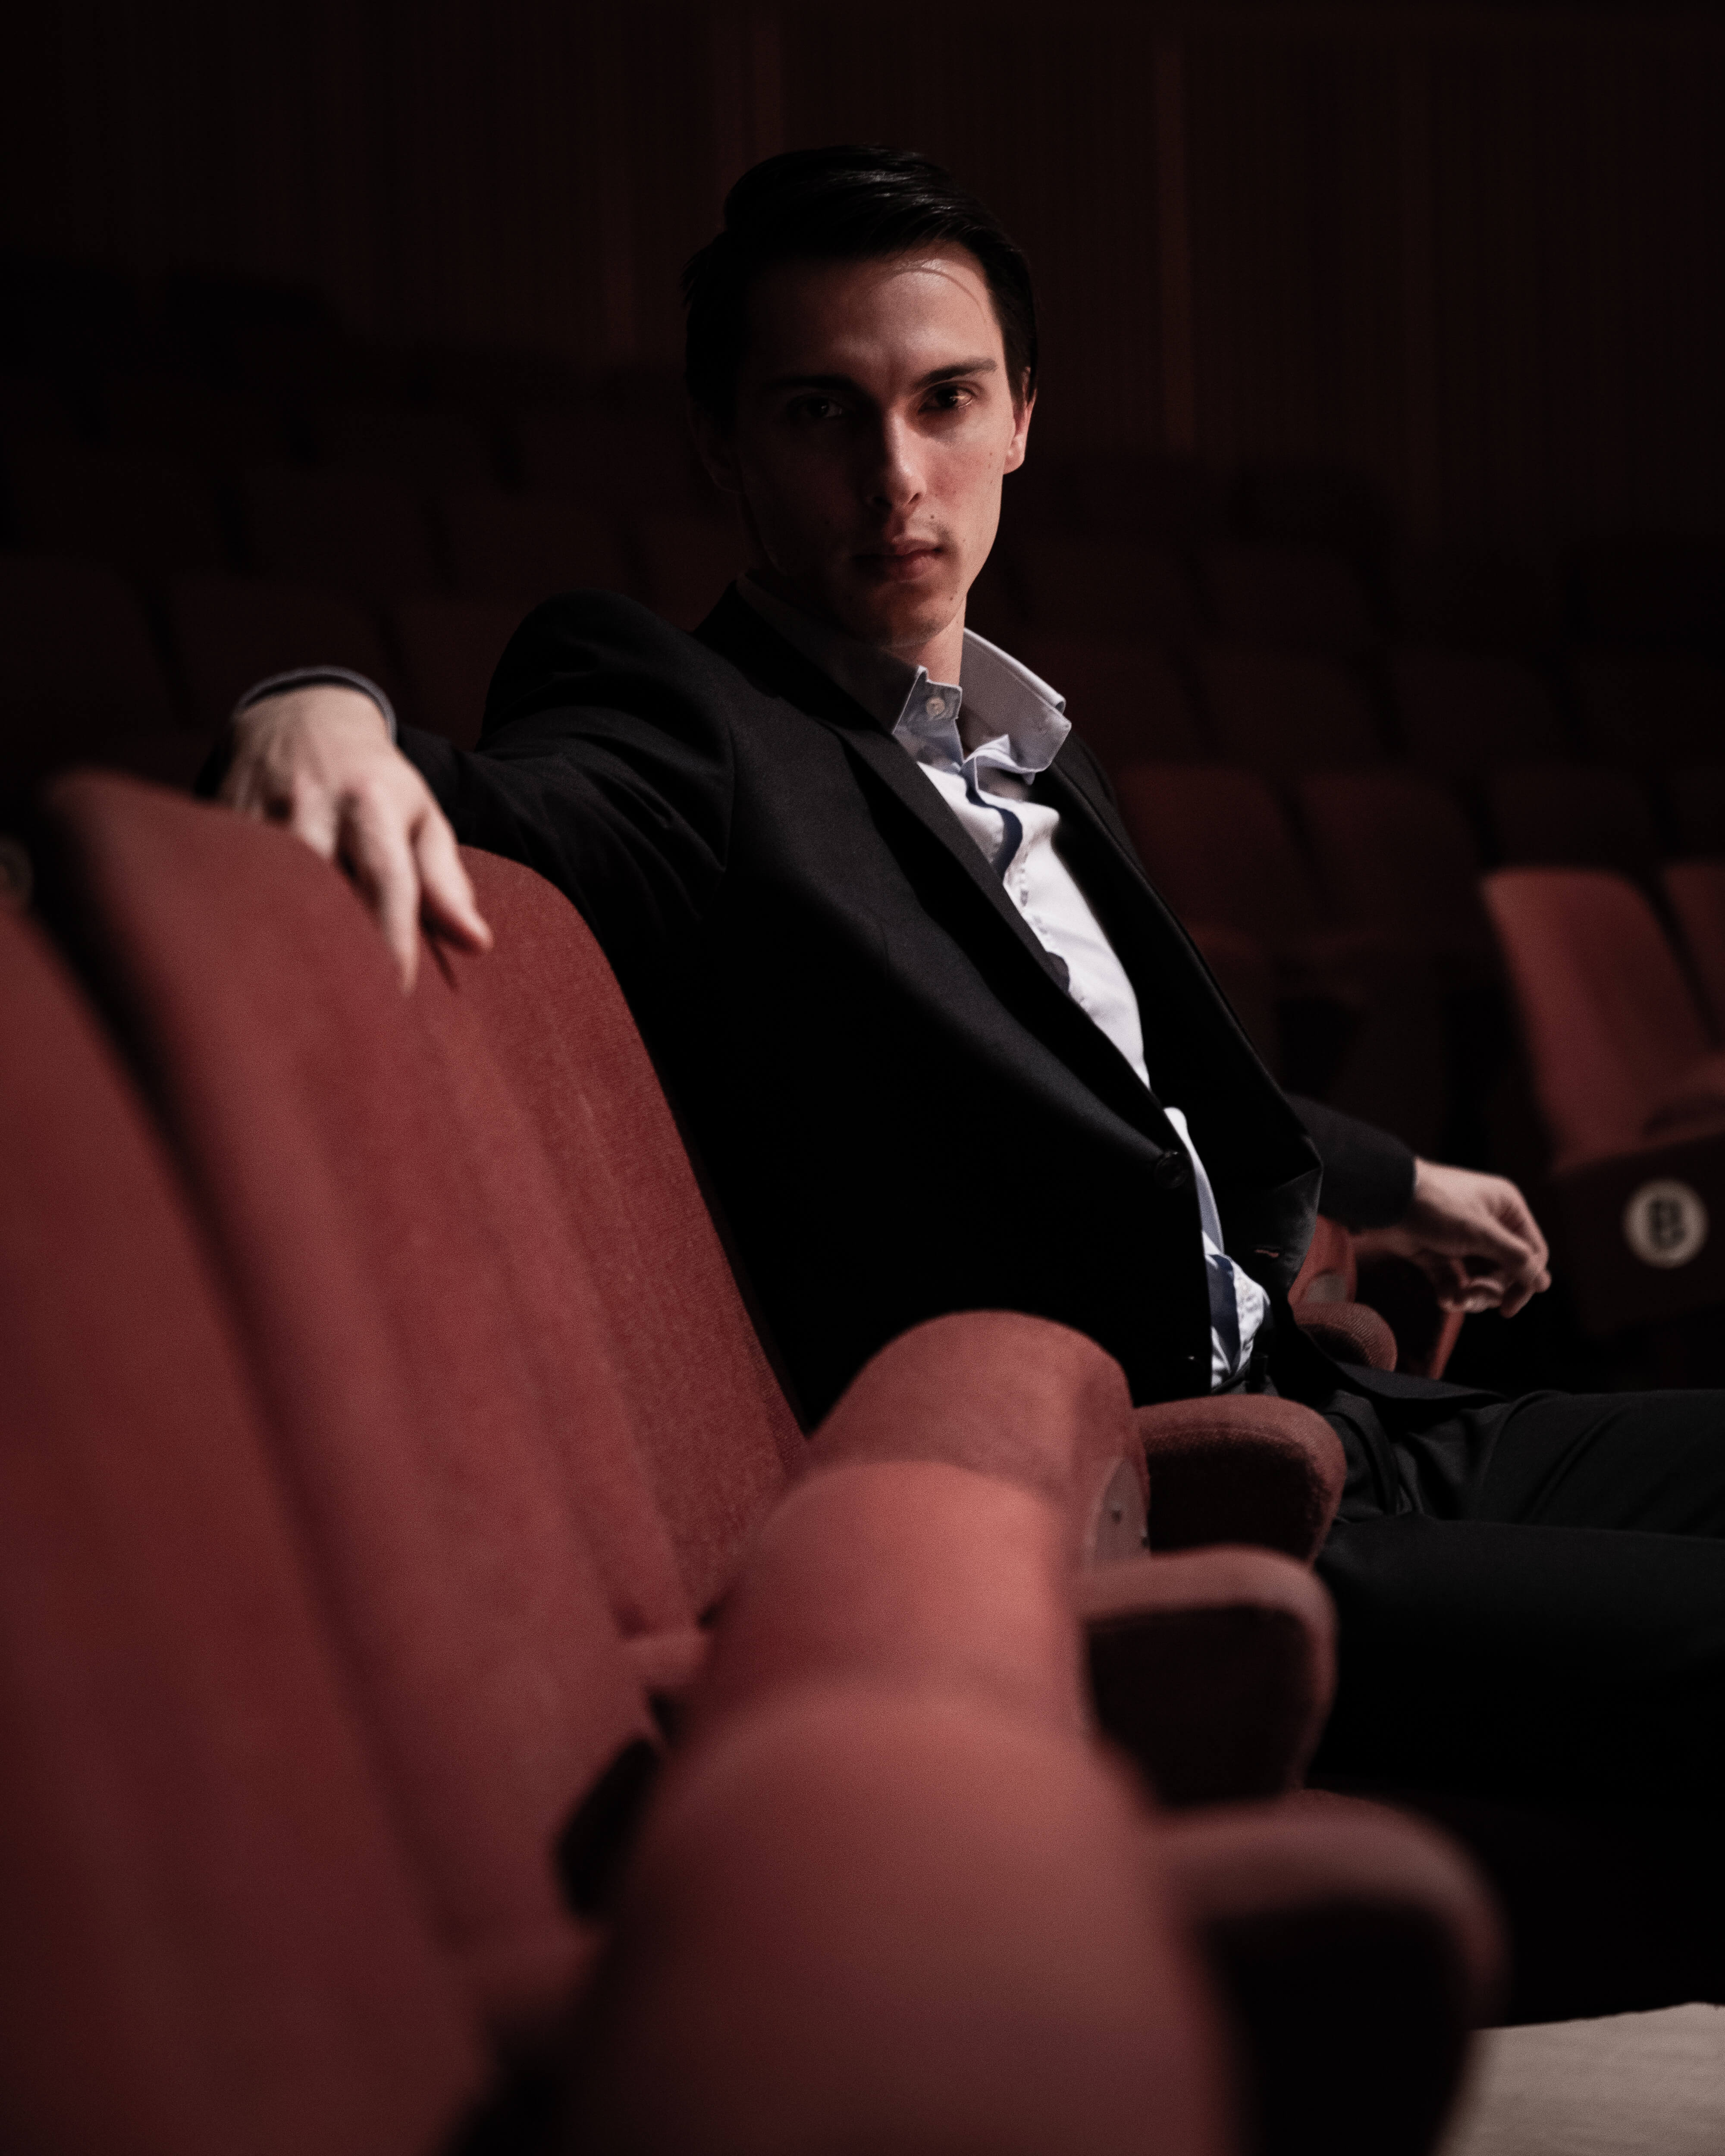 An audience member sitting in the concert hall with their arm on a red chair.